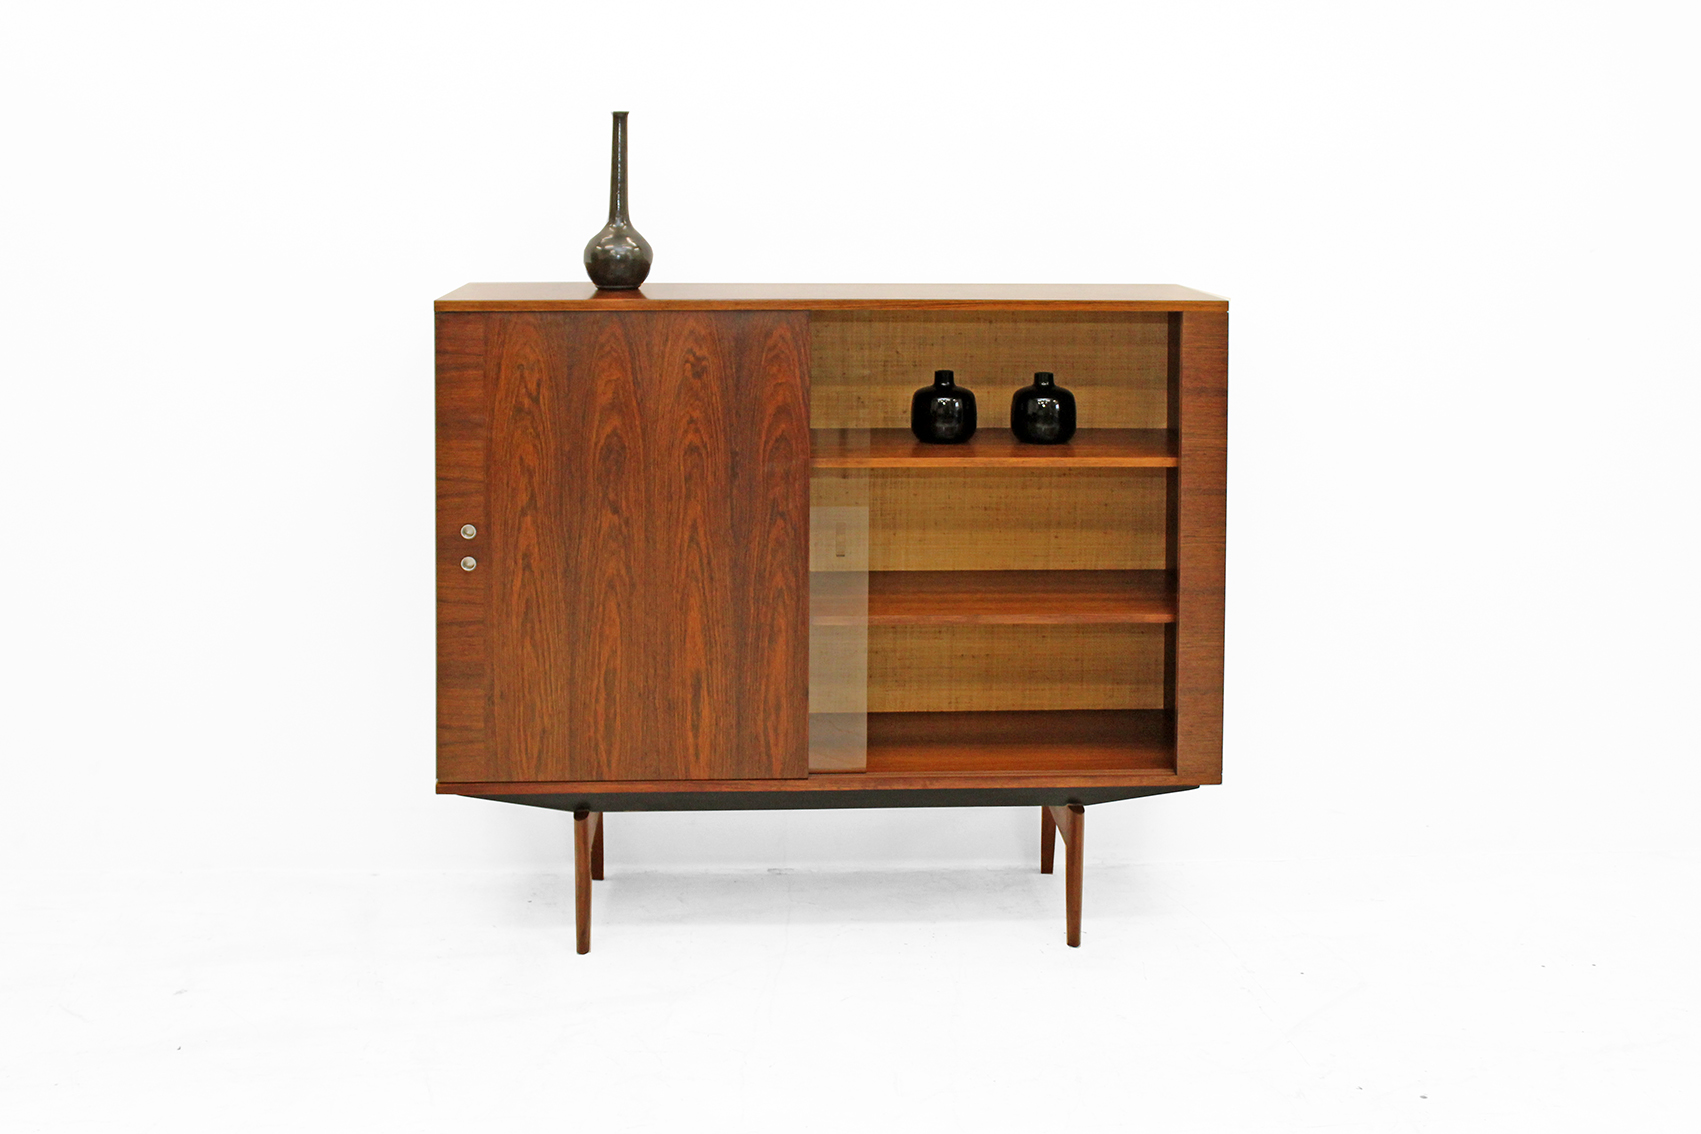 Exclusive barcabinet-showcase in Brazilian Rosewood